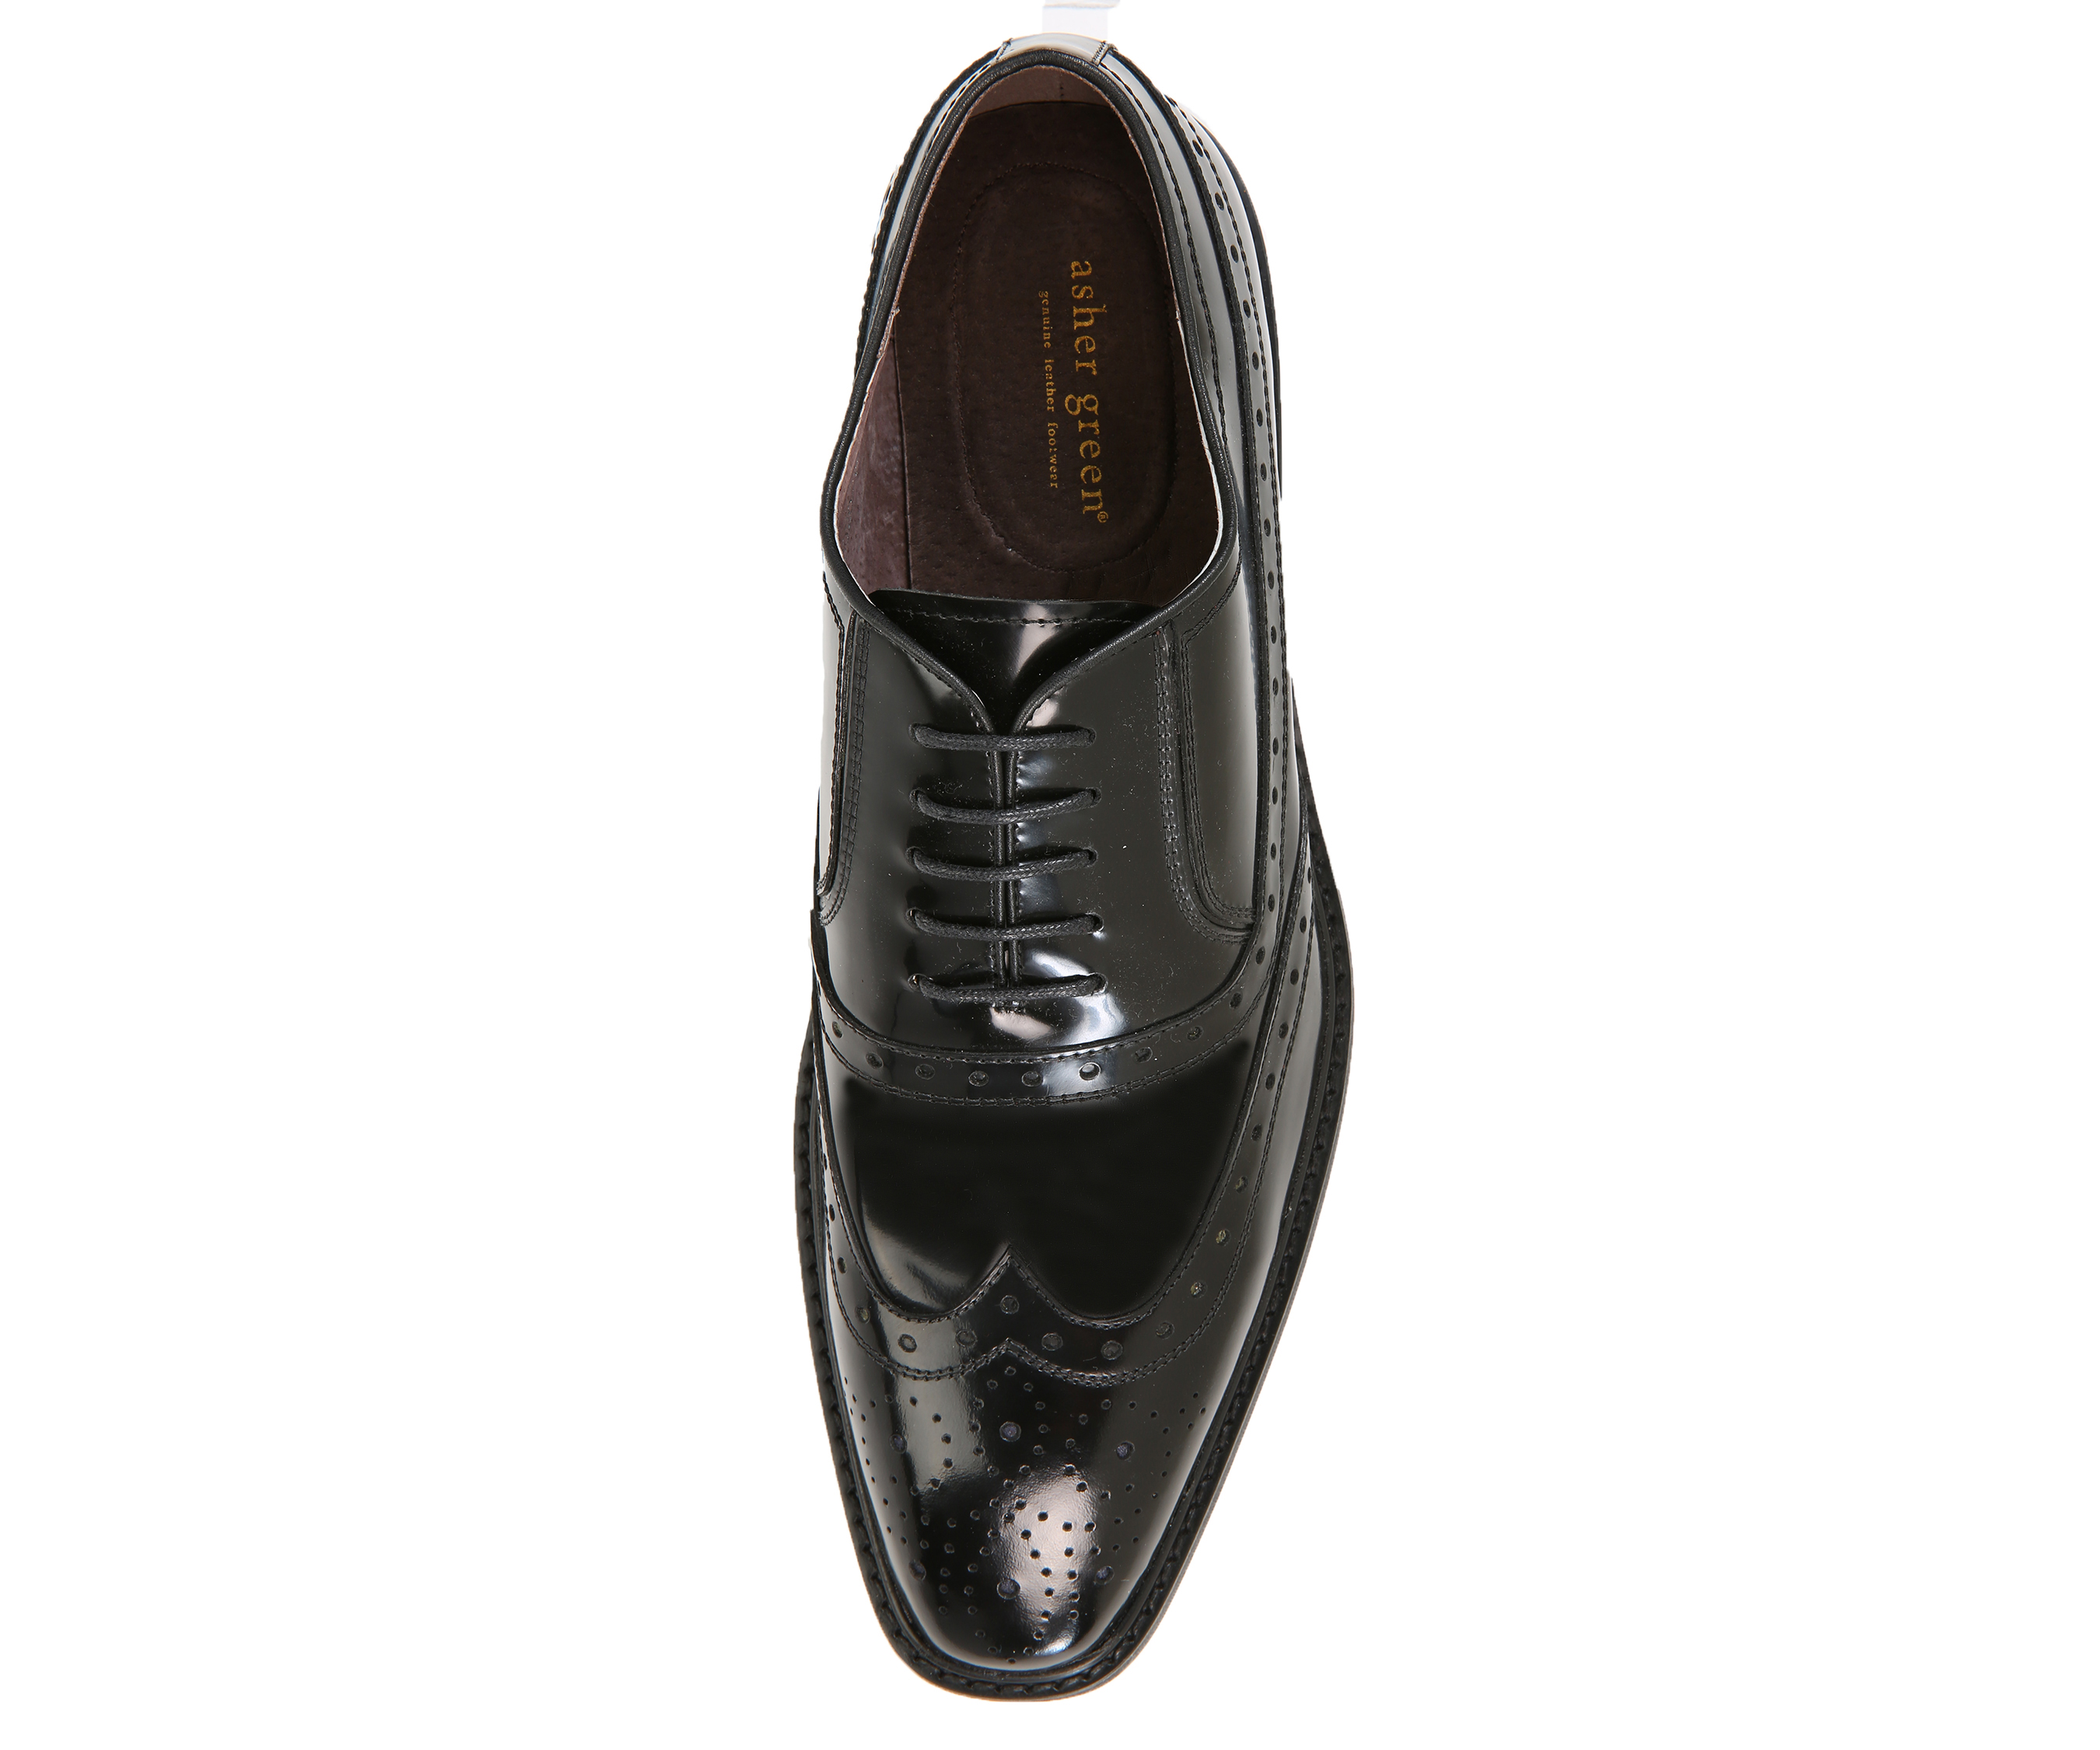 480c488bc8c36 Asher Green Mens Genuine Box Calf Leather Wingtip Dress Shoe, Classic  Lace-up Oxford Style